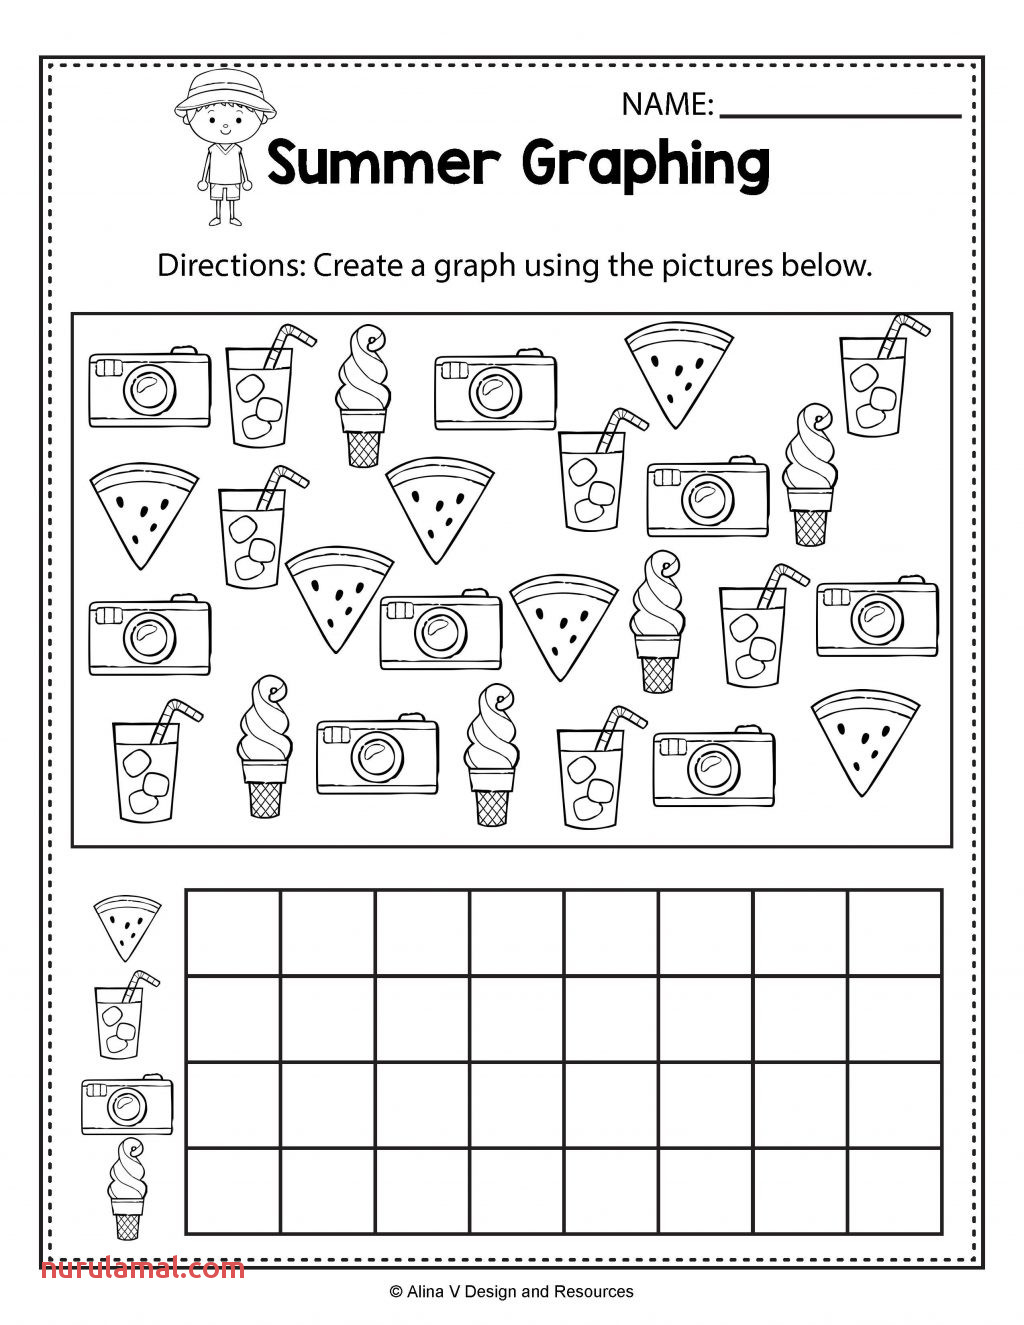 Summer Graphing Math Worksheets and Activities for Ids